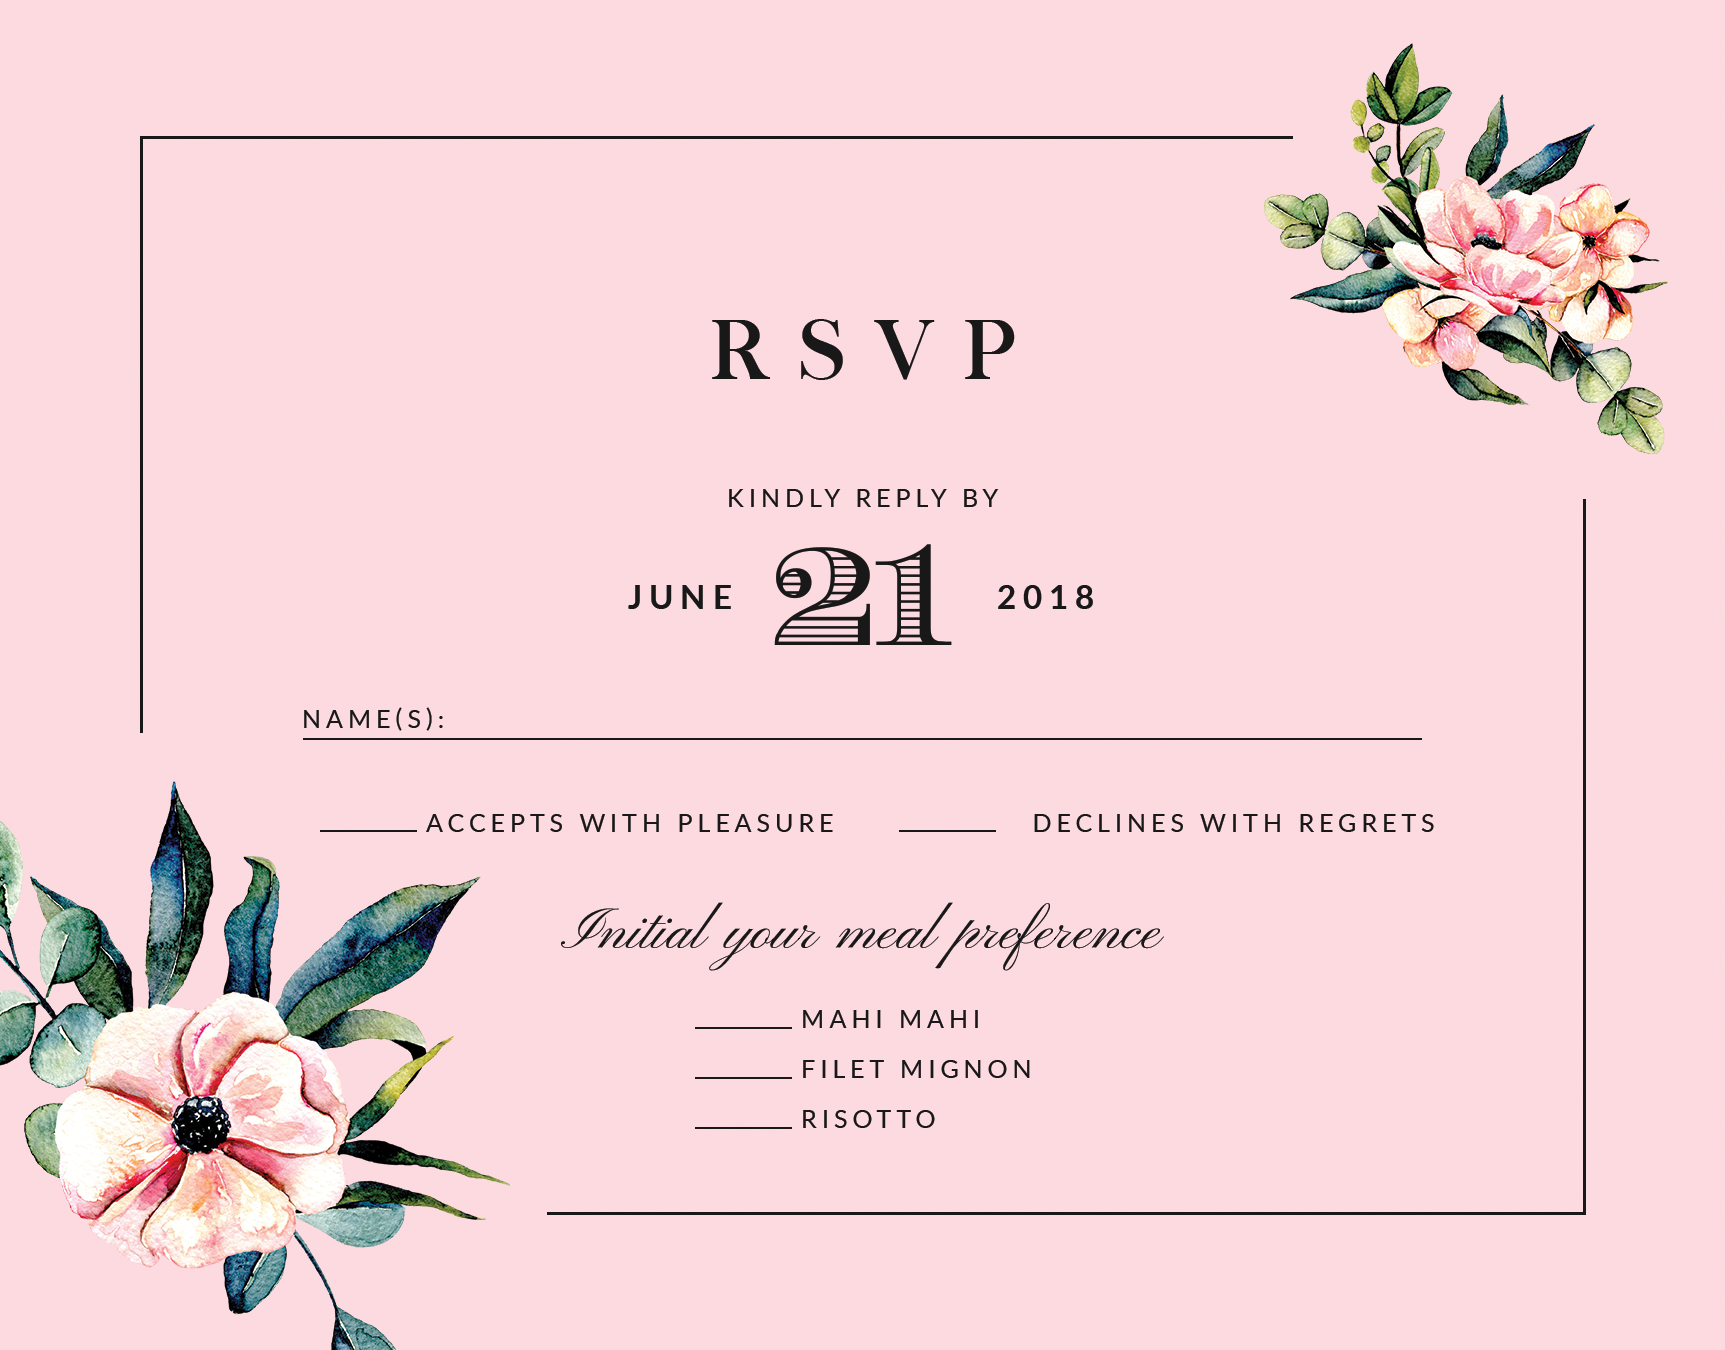 RSVP - US A2 CARD SIZE - COLOR 2_RGB.png